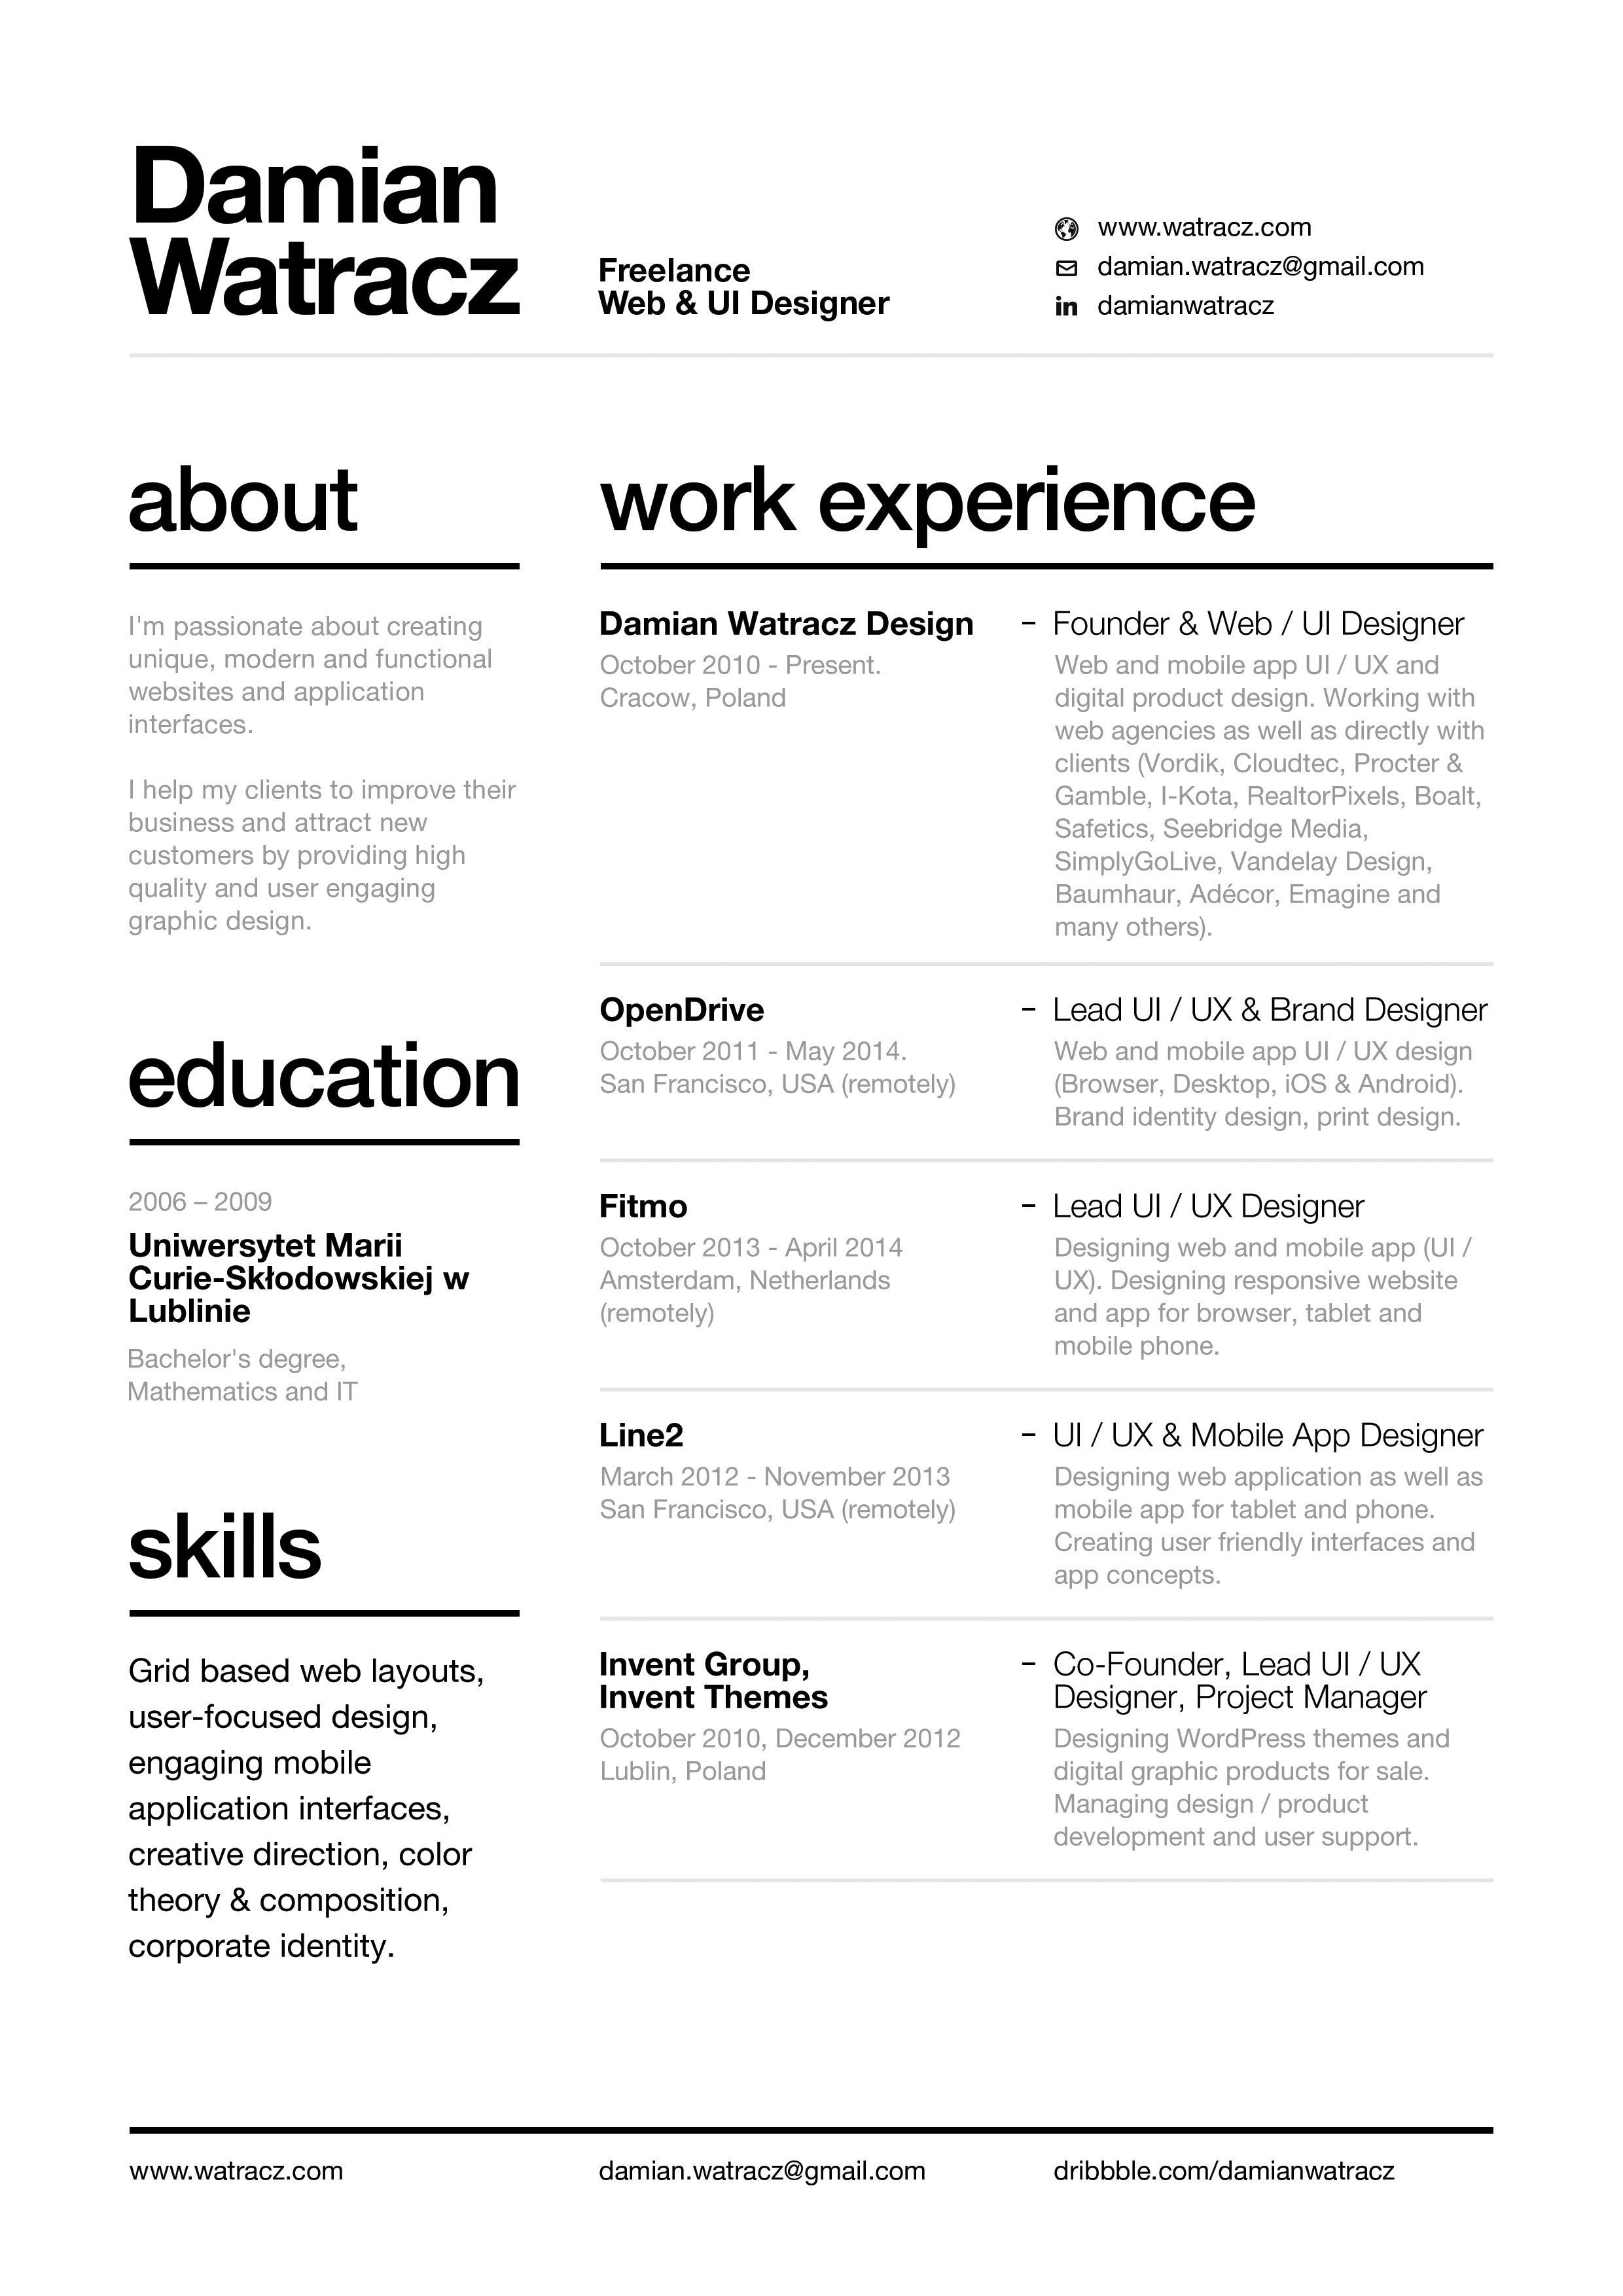 Using Resume Layout Advice Template Online Resume Design